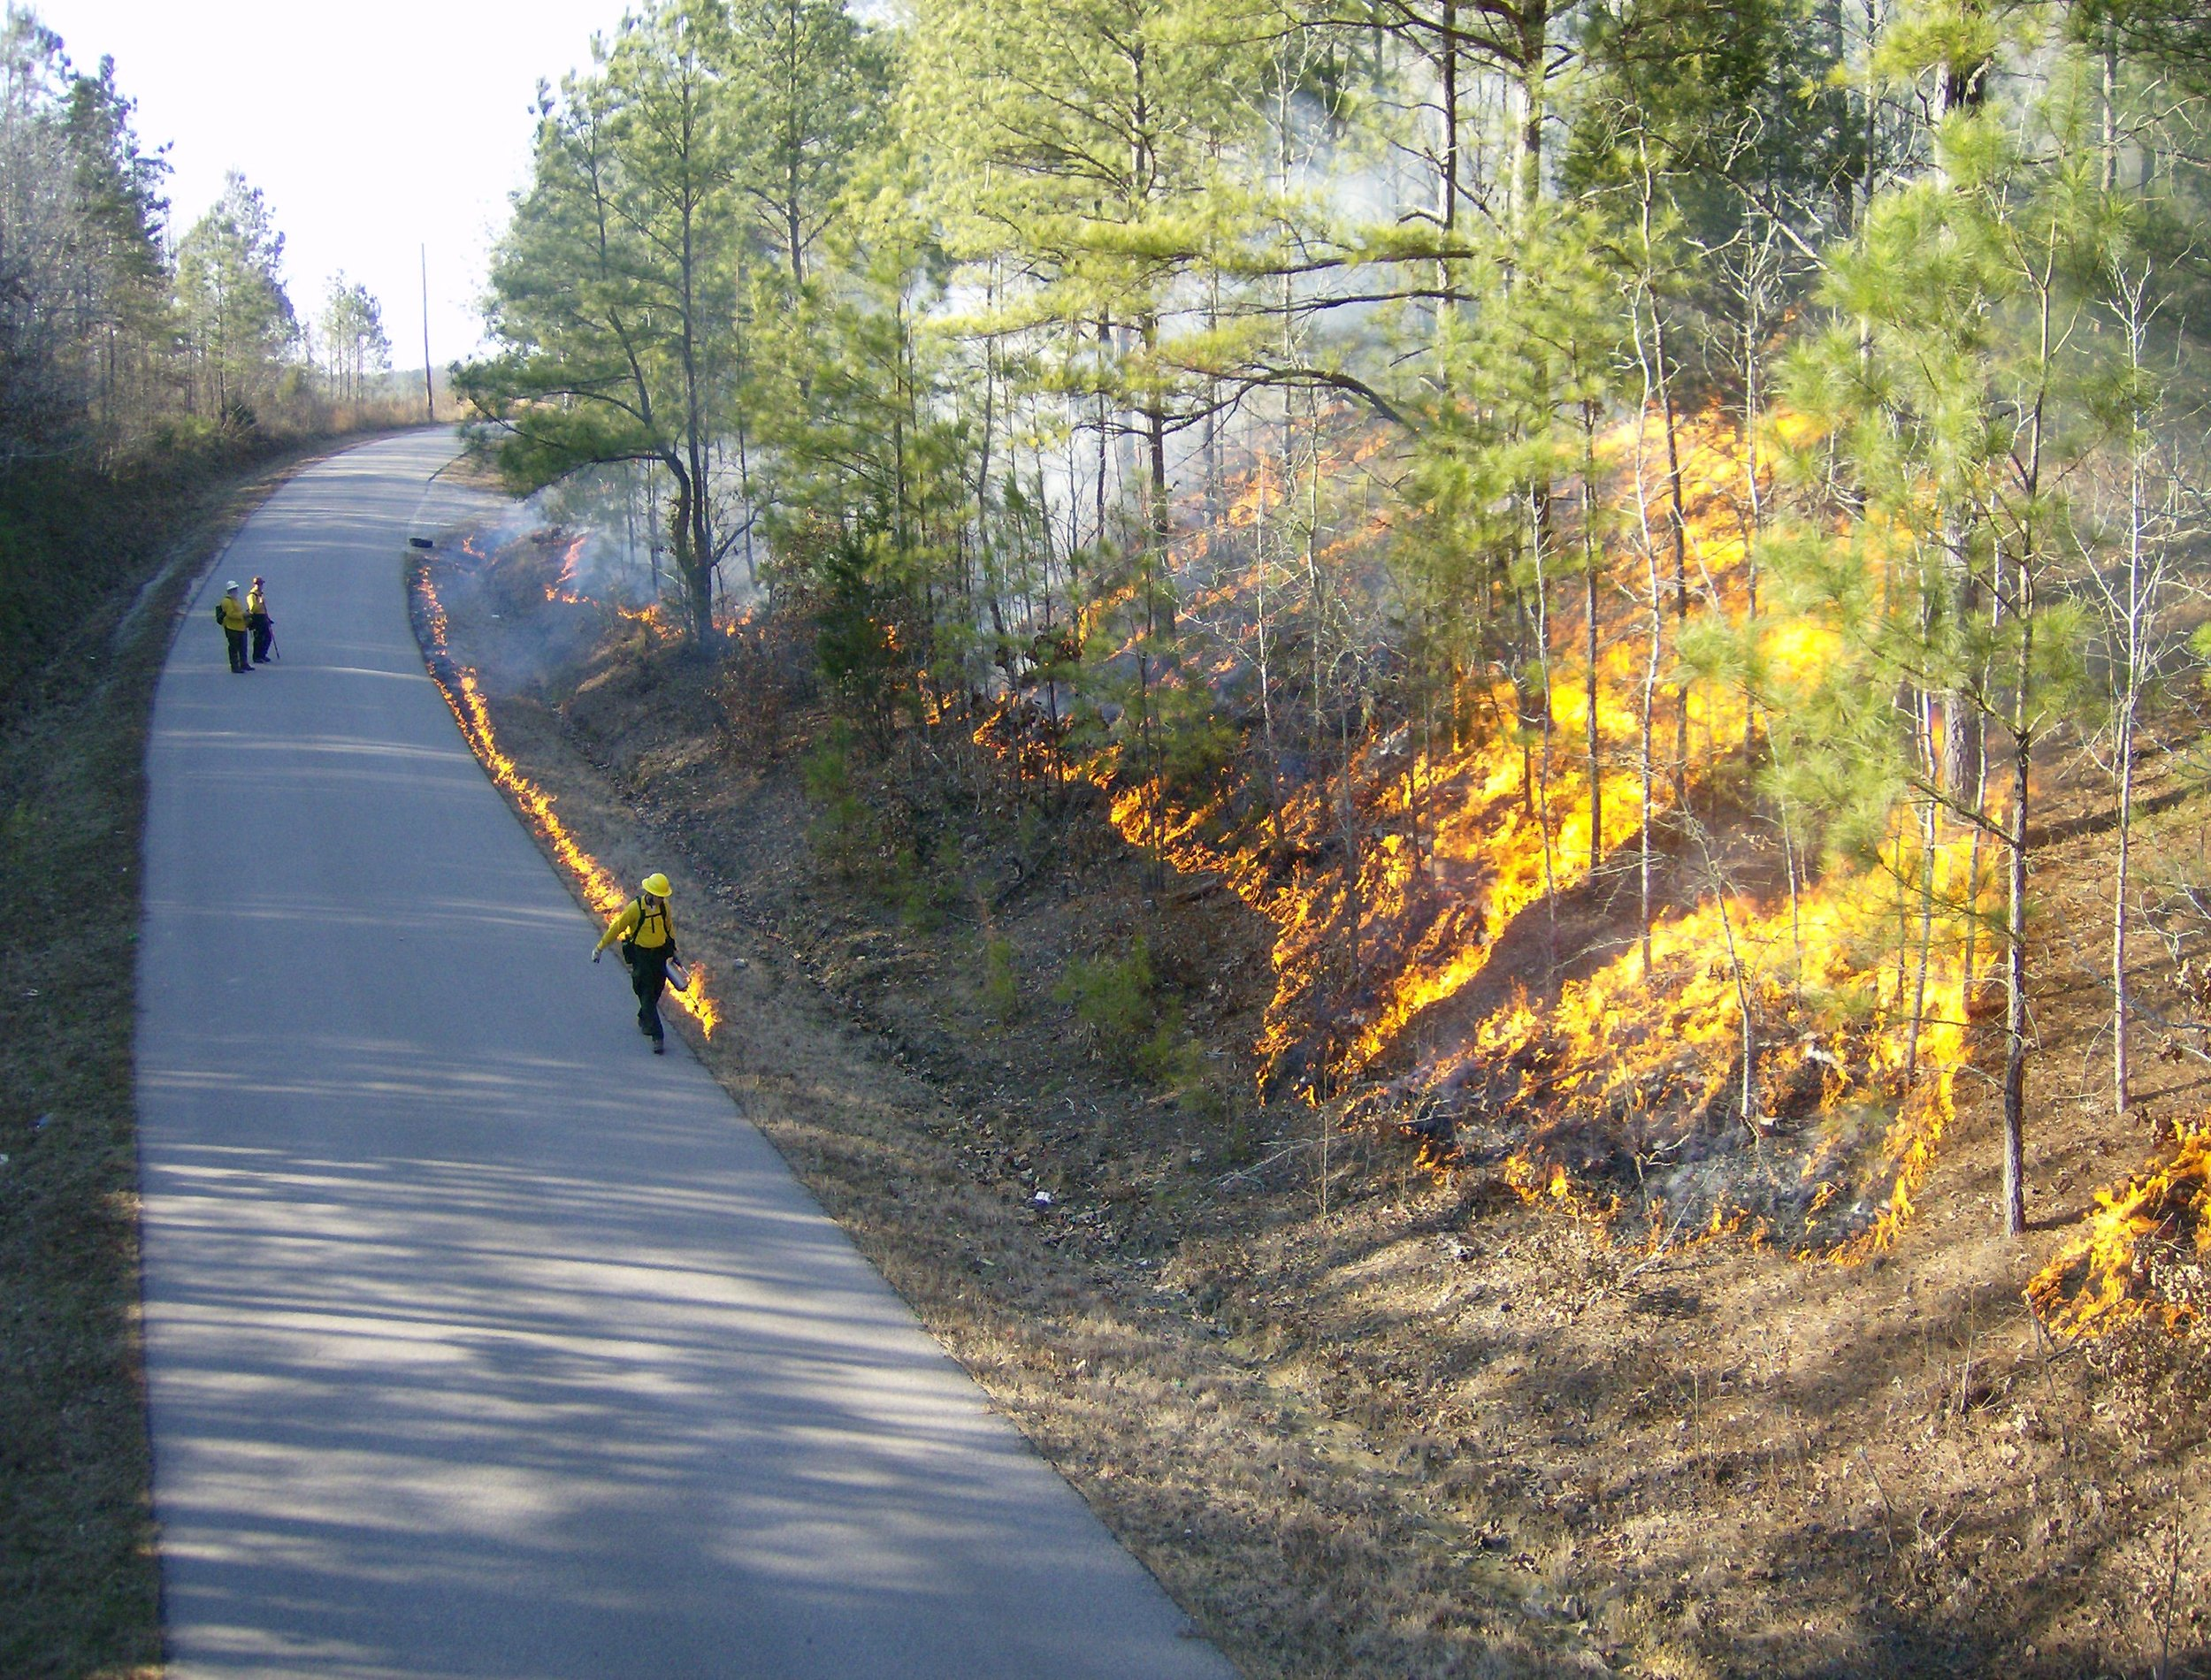 Firefighters do a prescribed burn to consume fuels ahead of a fire Photo: USFS